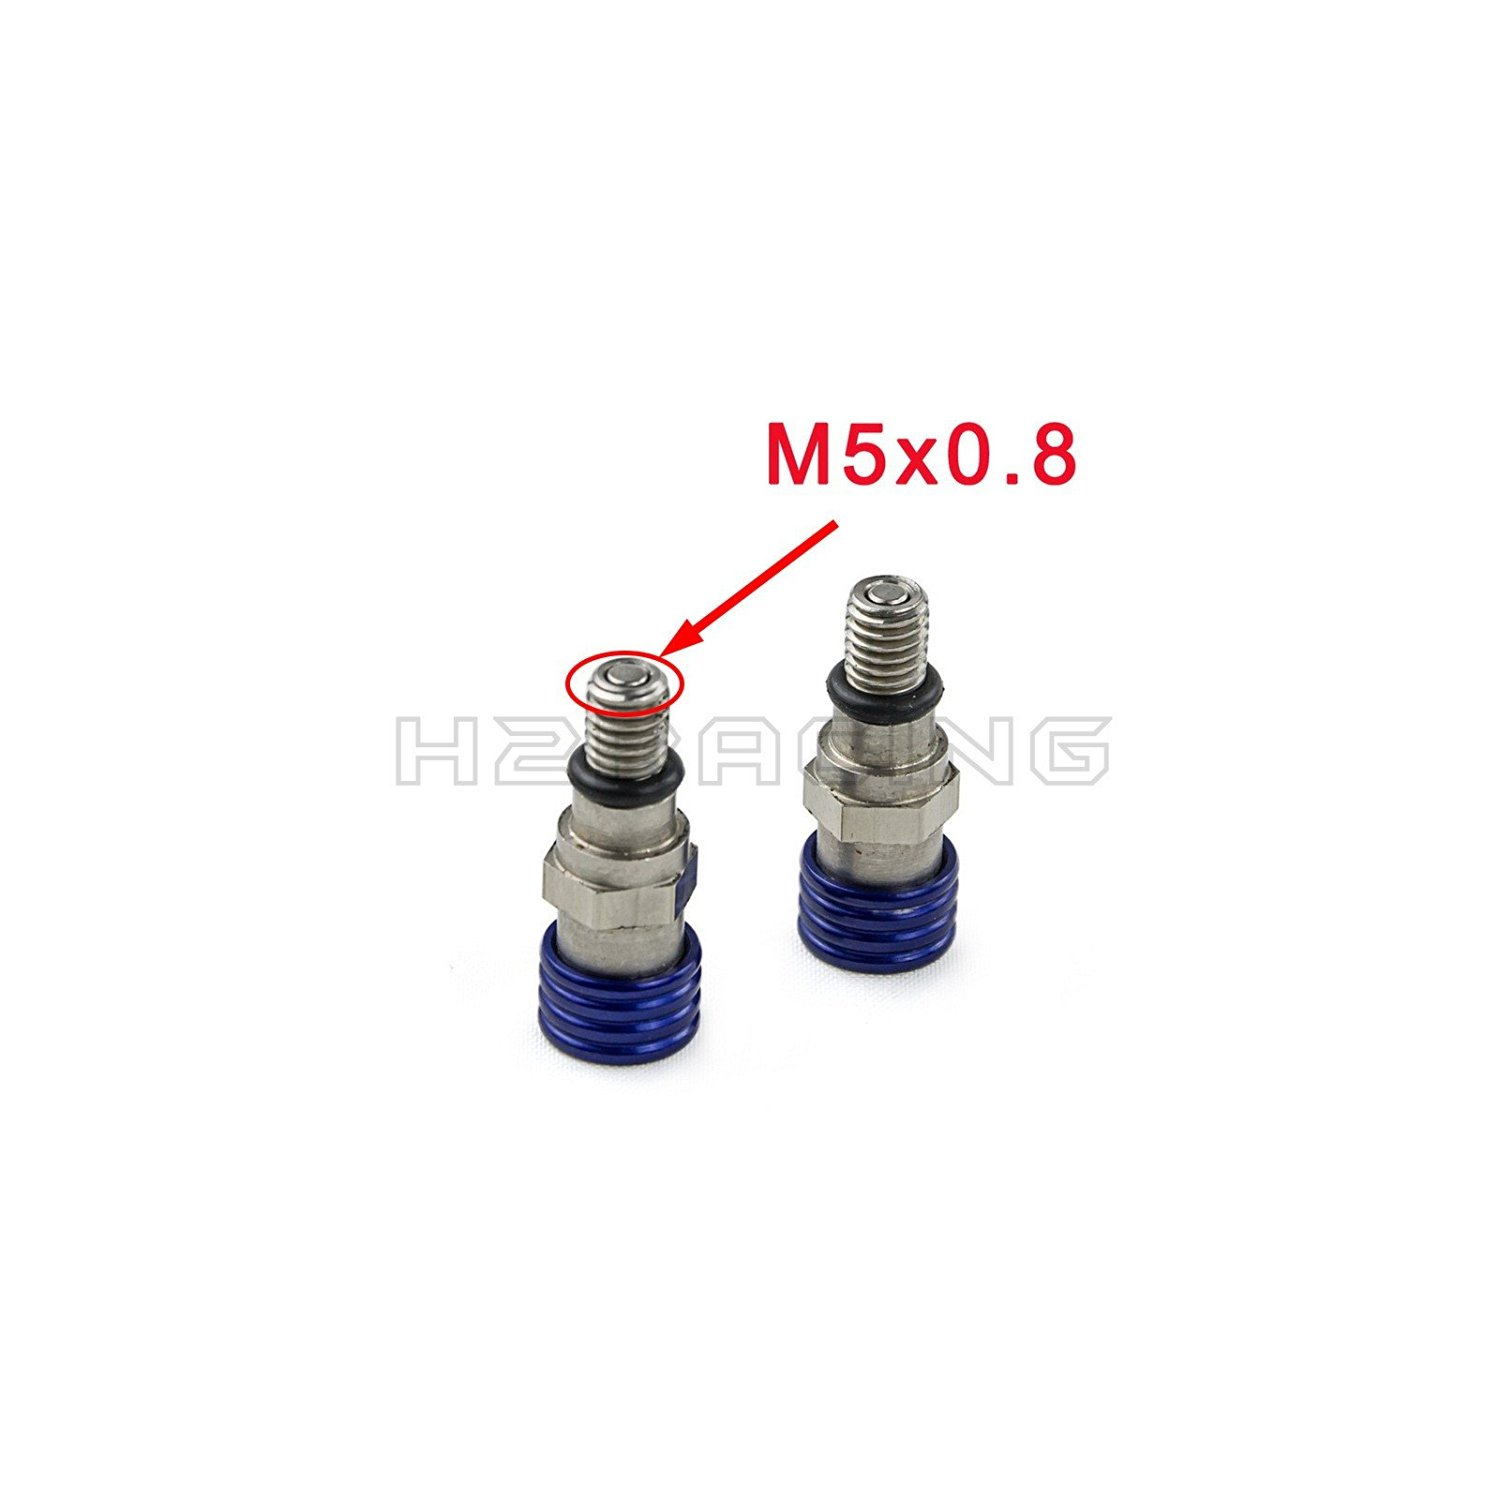 Buy H2RACING M5x0.8mm Fork Bleeders Valves for Yamaha